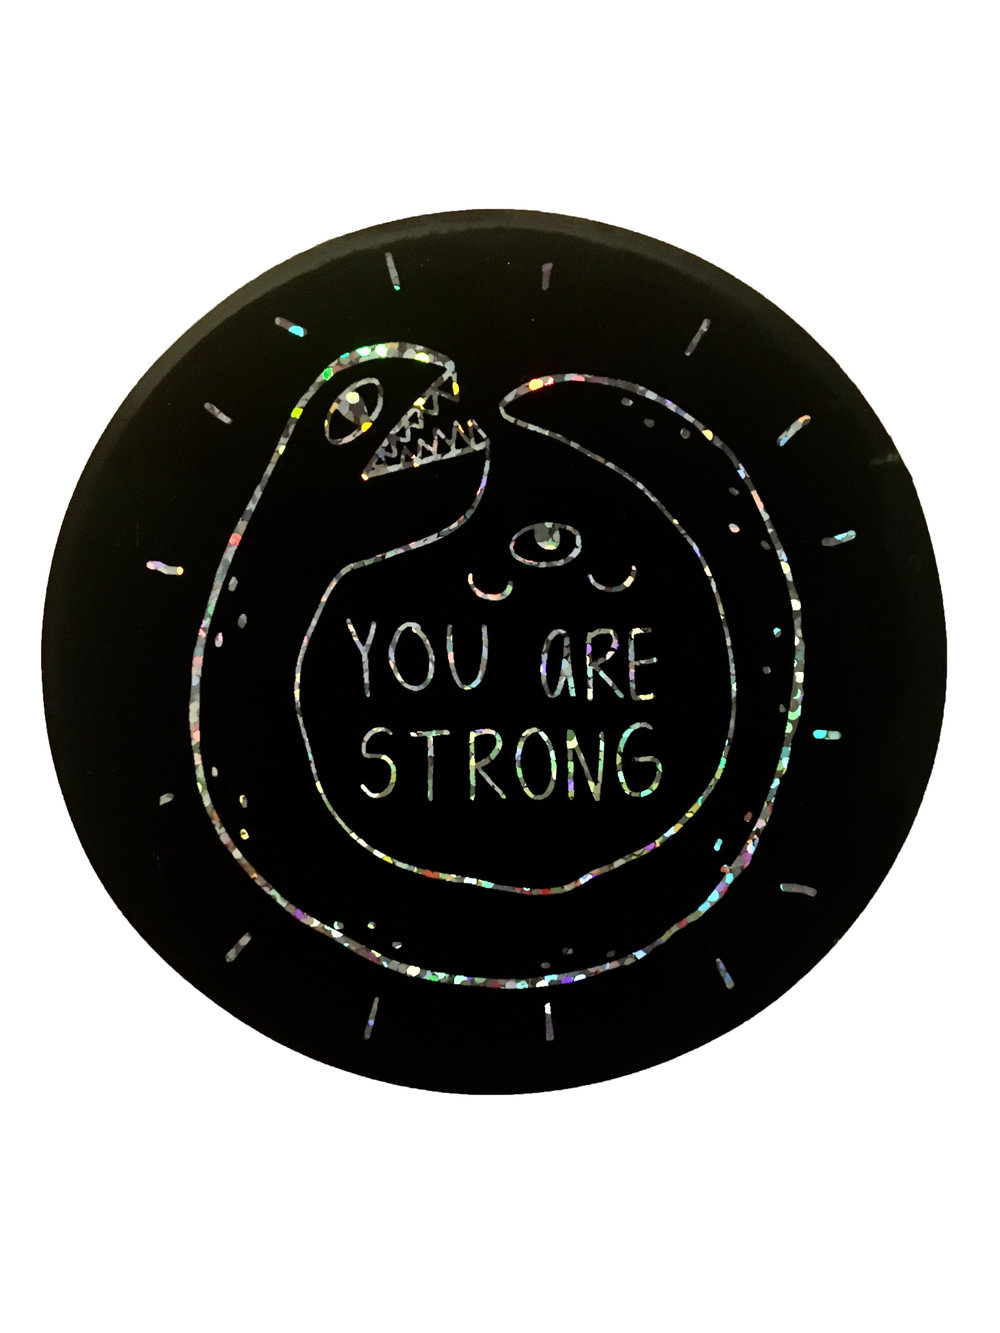 'You are Strong' © 2018 Candice Ploy Goodman all rights reserved